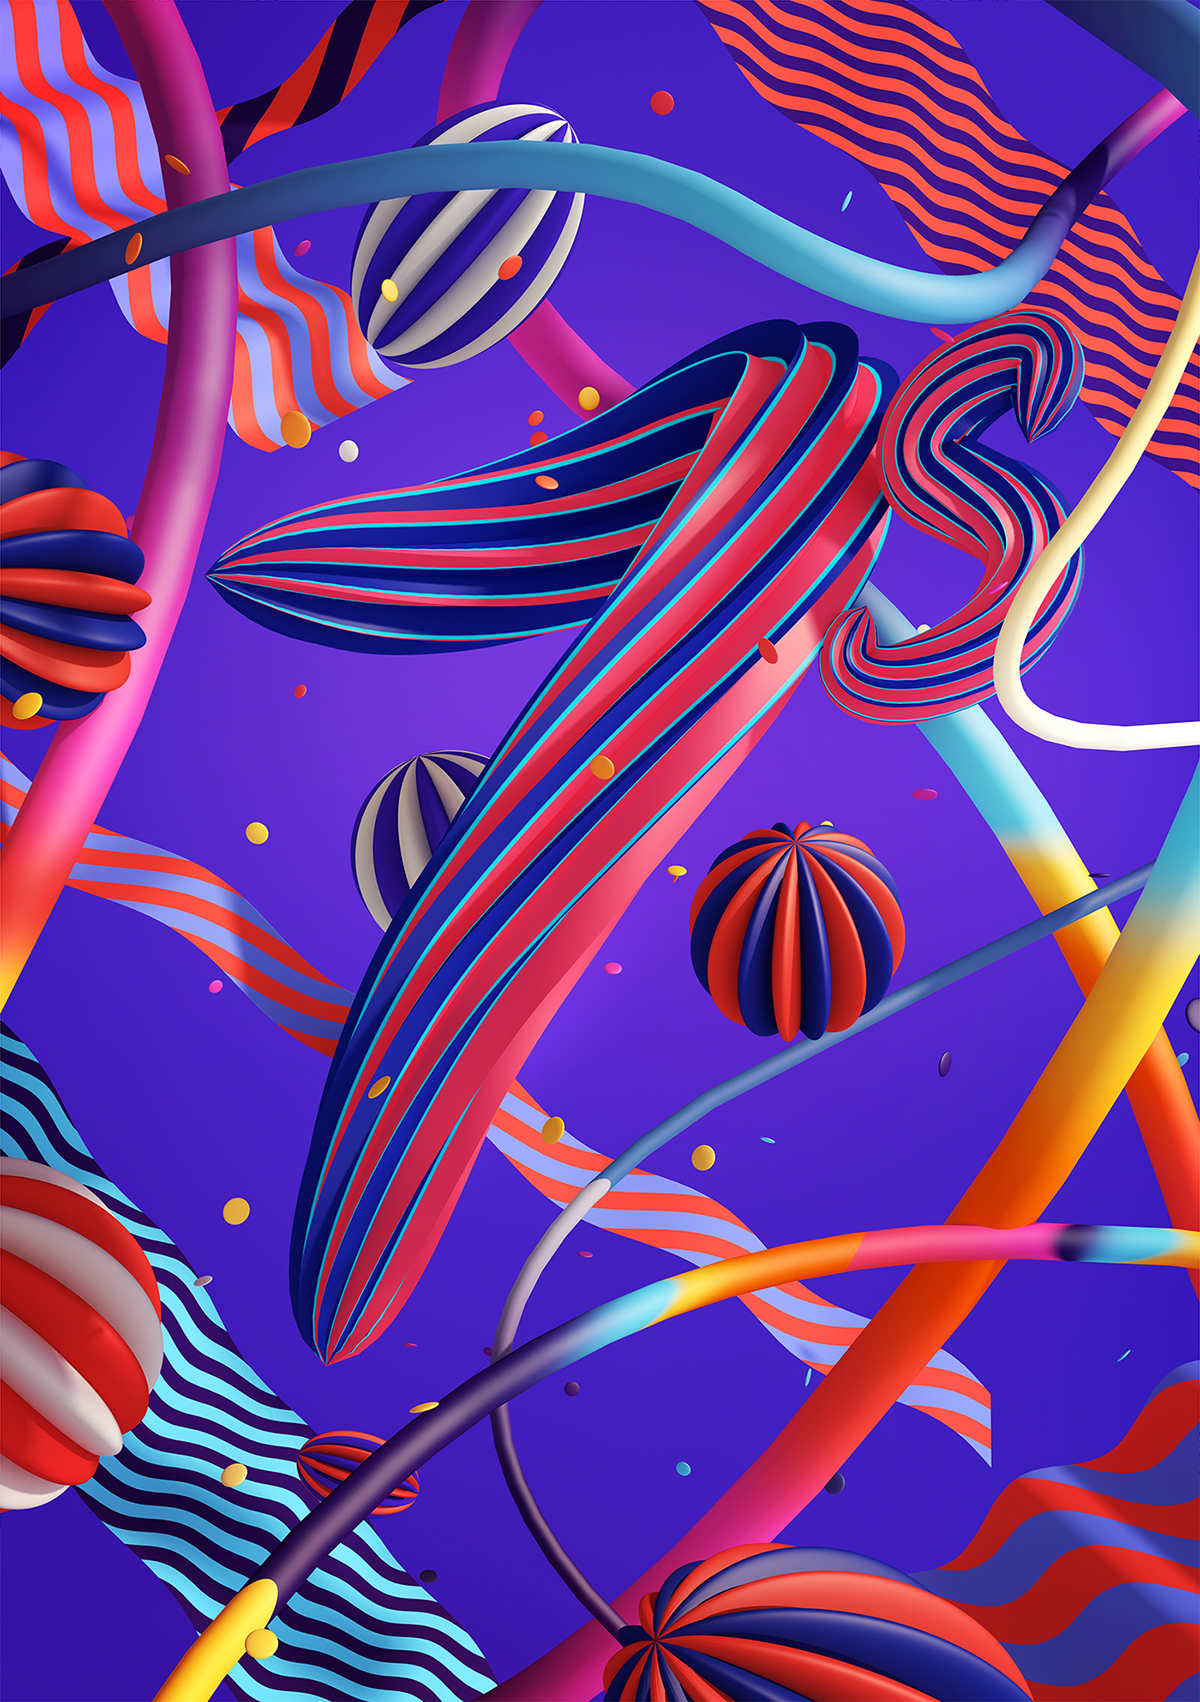 World Rugby - Sevens Series on Behance